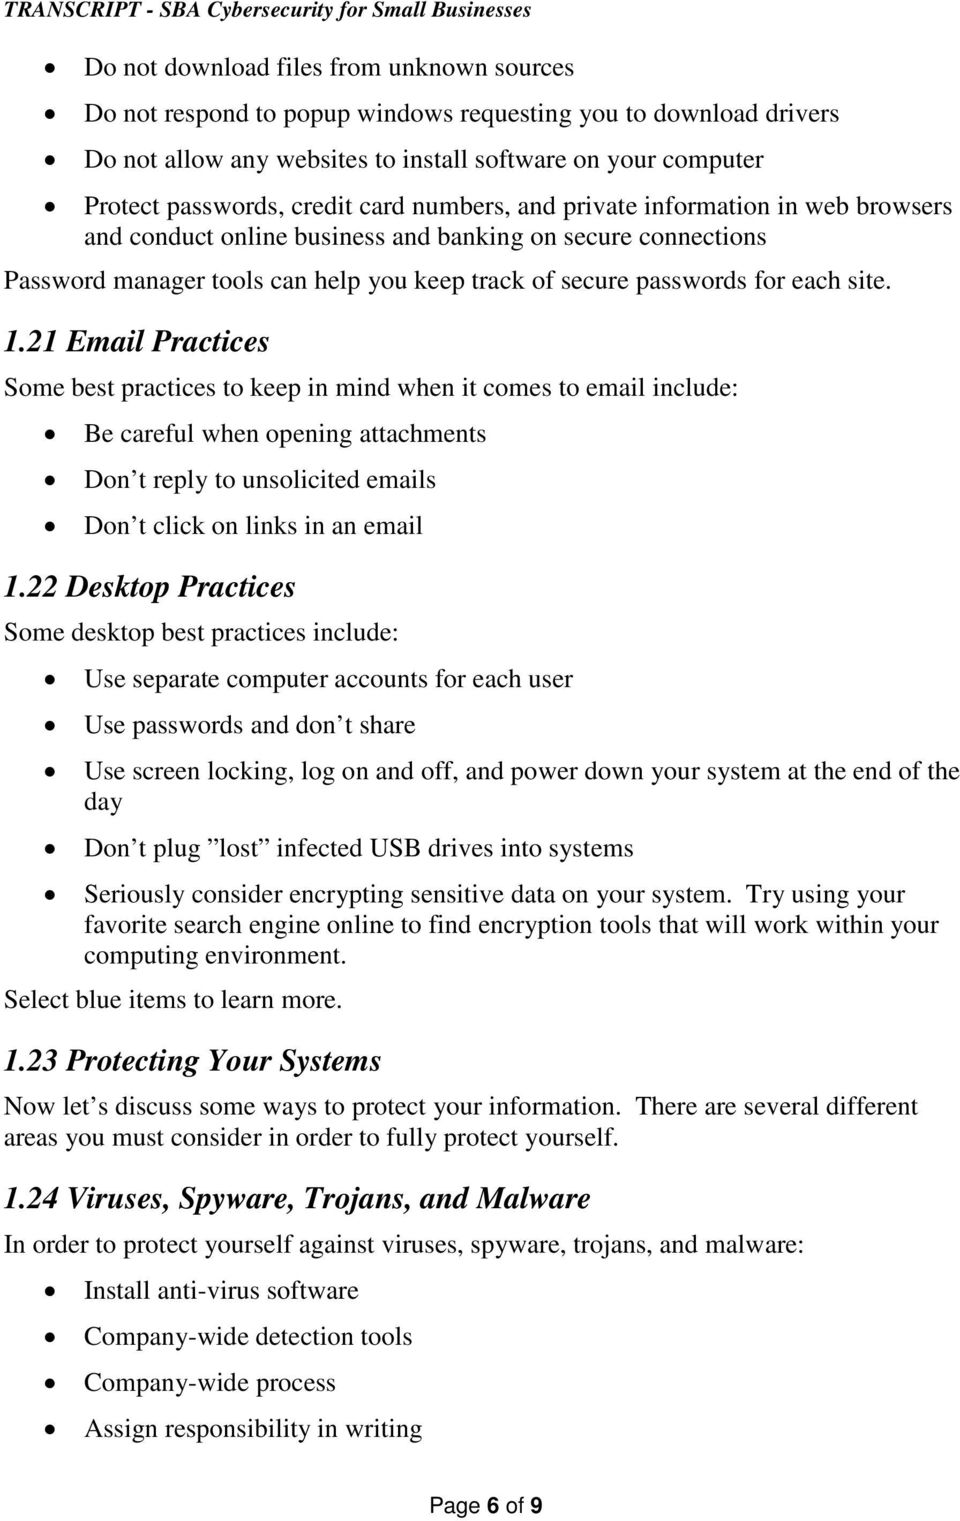 21 Email Practices Some best practices to keep in mind when it comes to email include: Be careful when opening attachments Don t reply to unsolicited emails Don t click on links in an email 1.